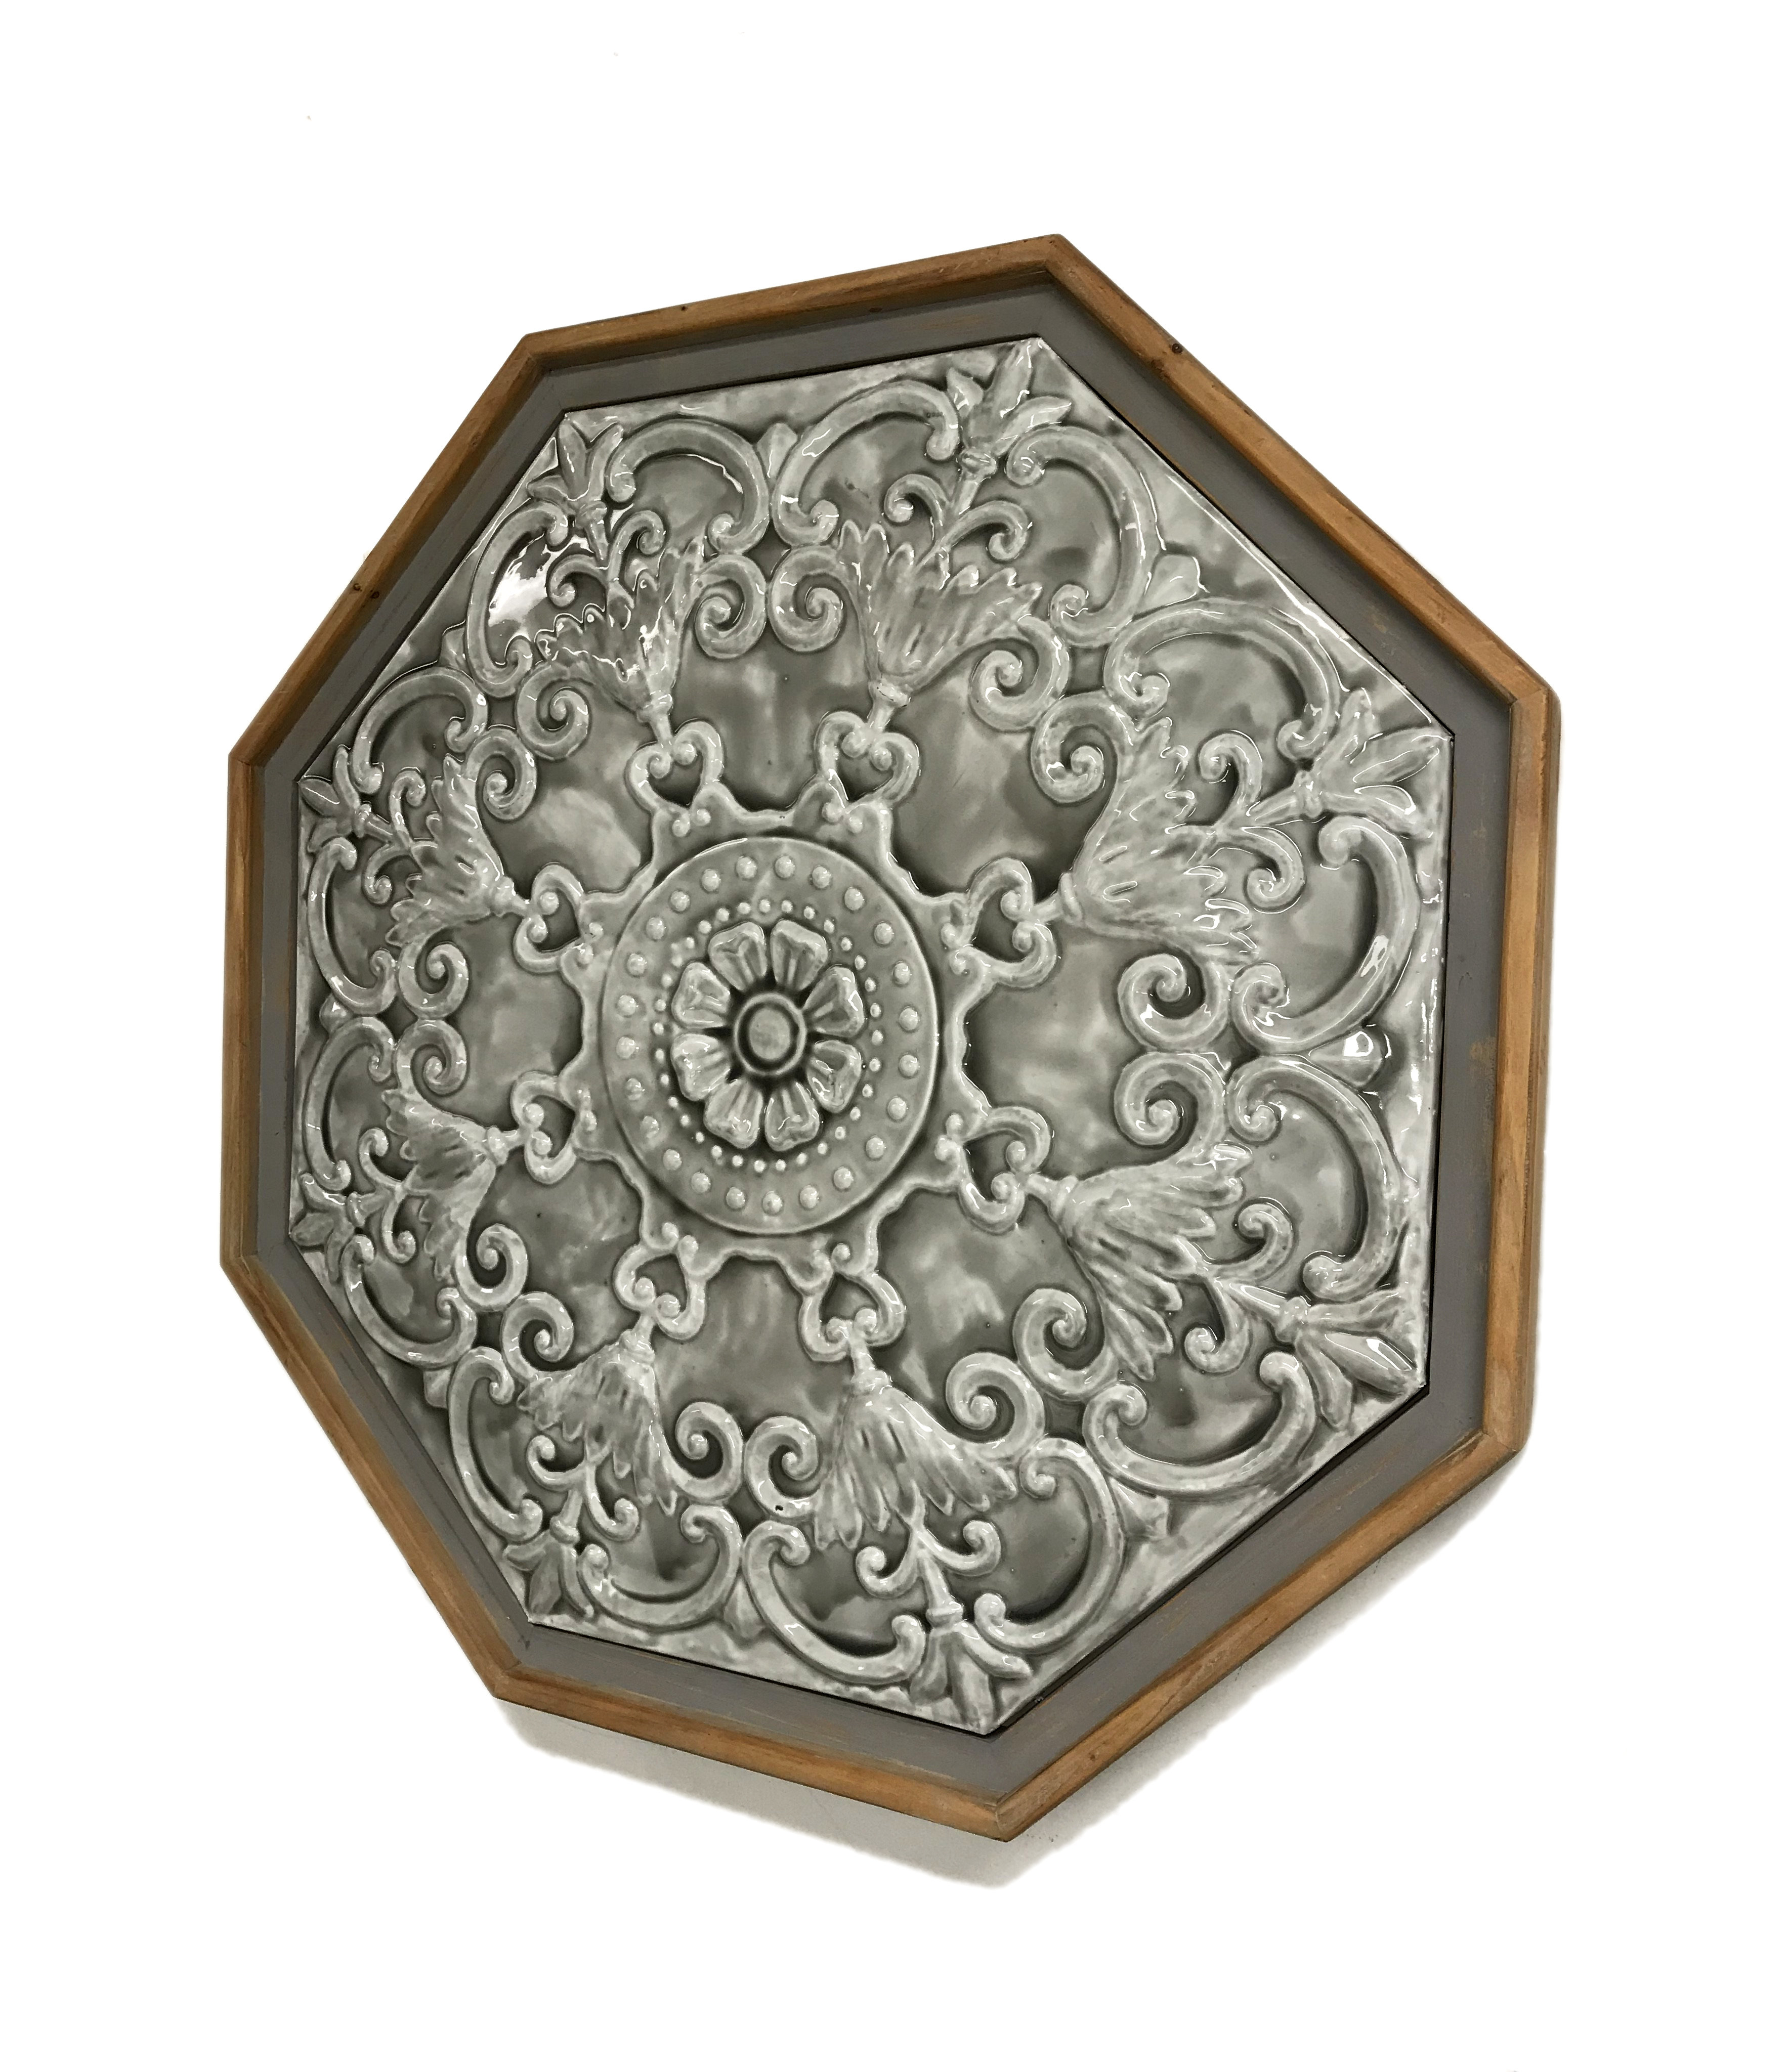 Medallion Wall Decor | Wayfair with regard to Small Medallion Wall Decor (Image 13 of 30)